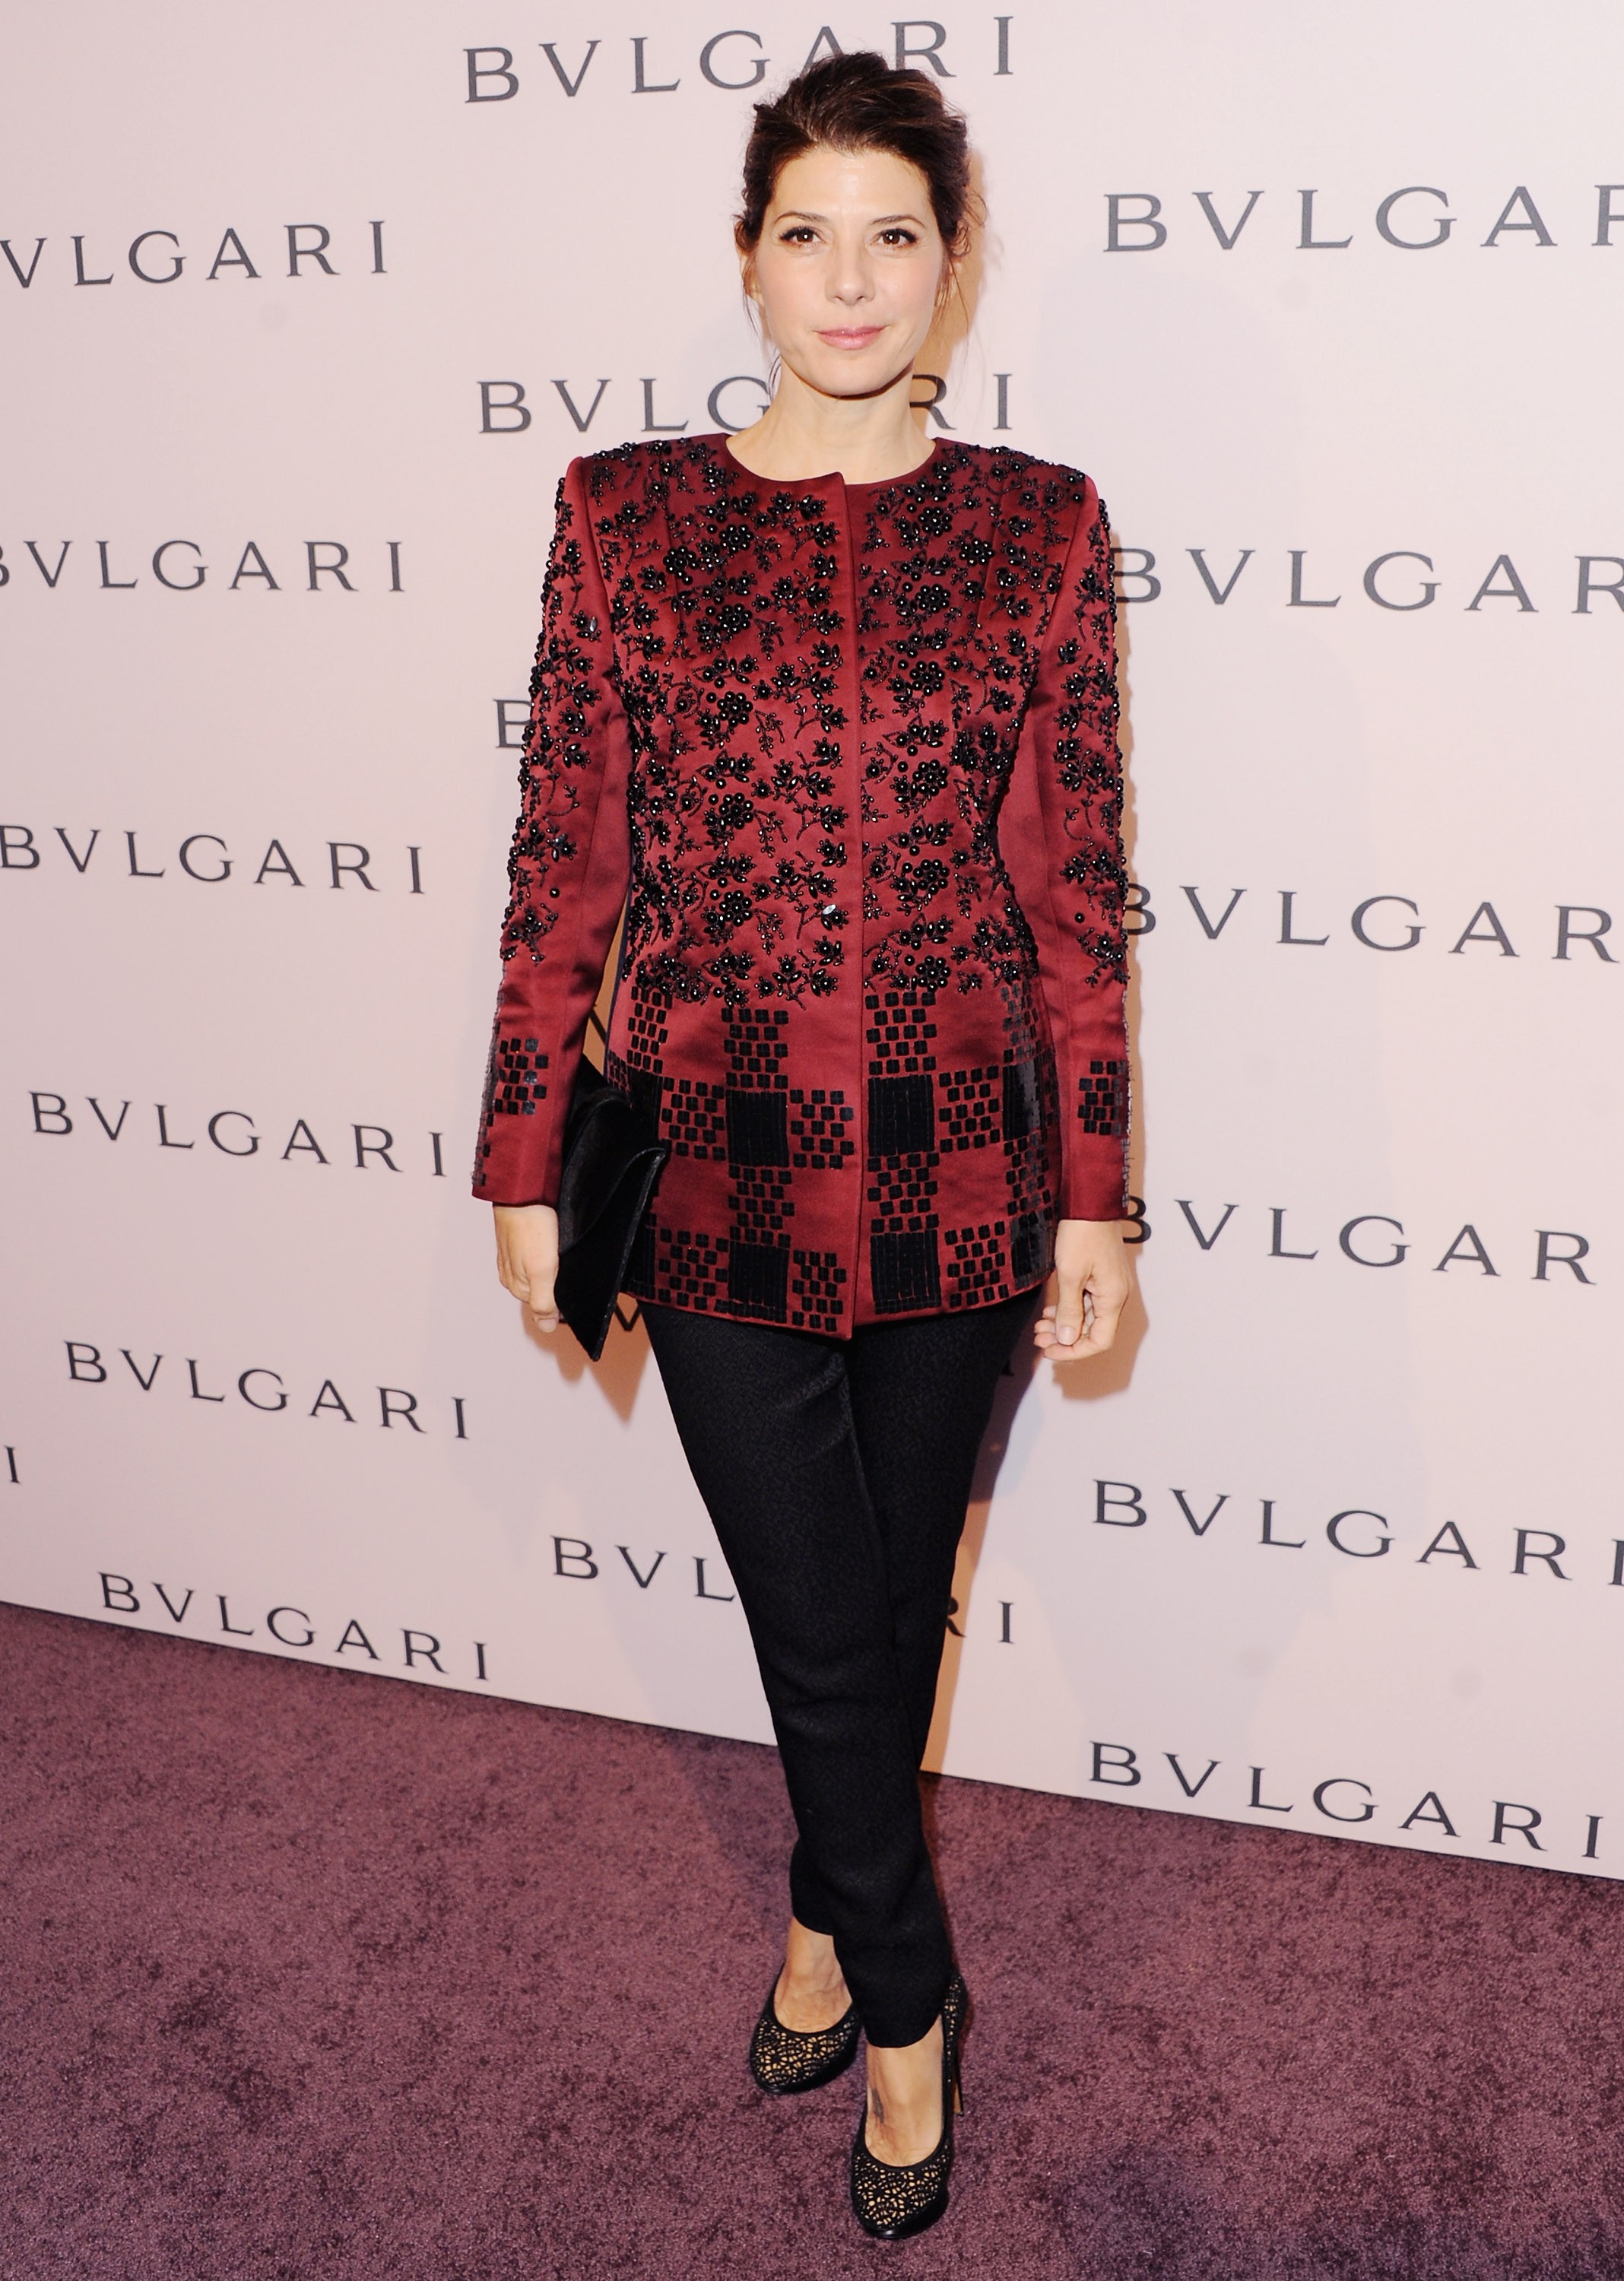 Marisa Tomei wore a red jacket.